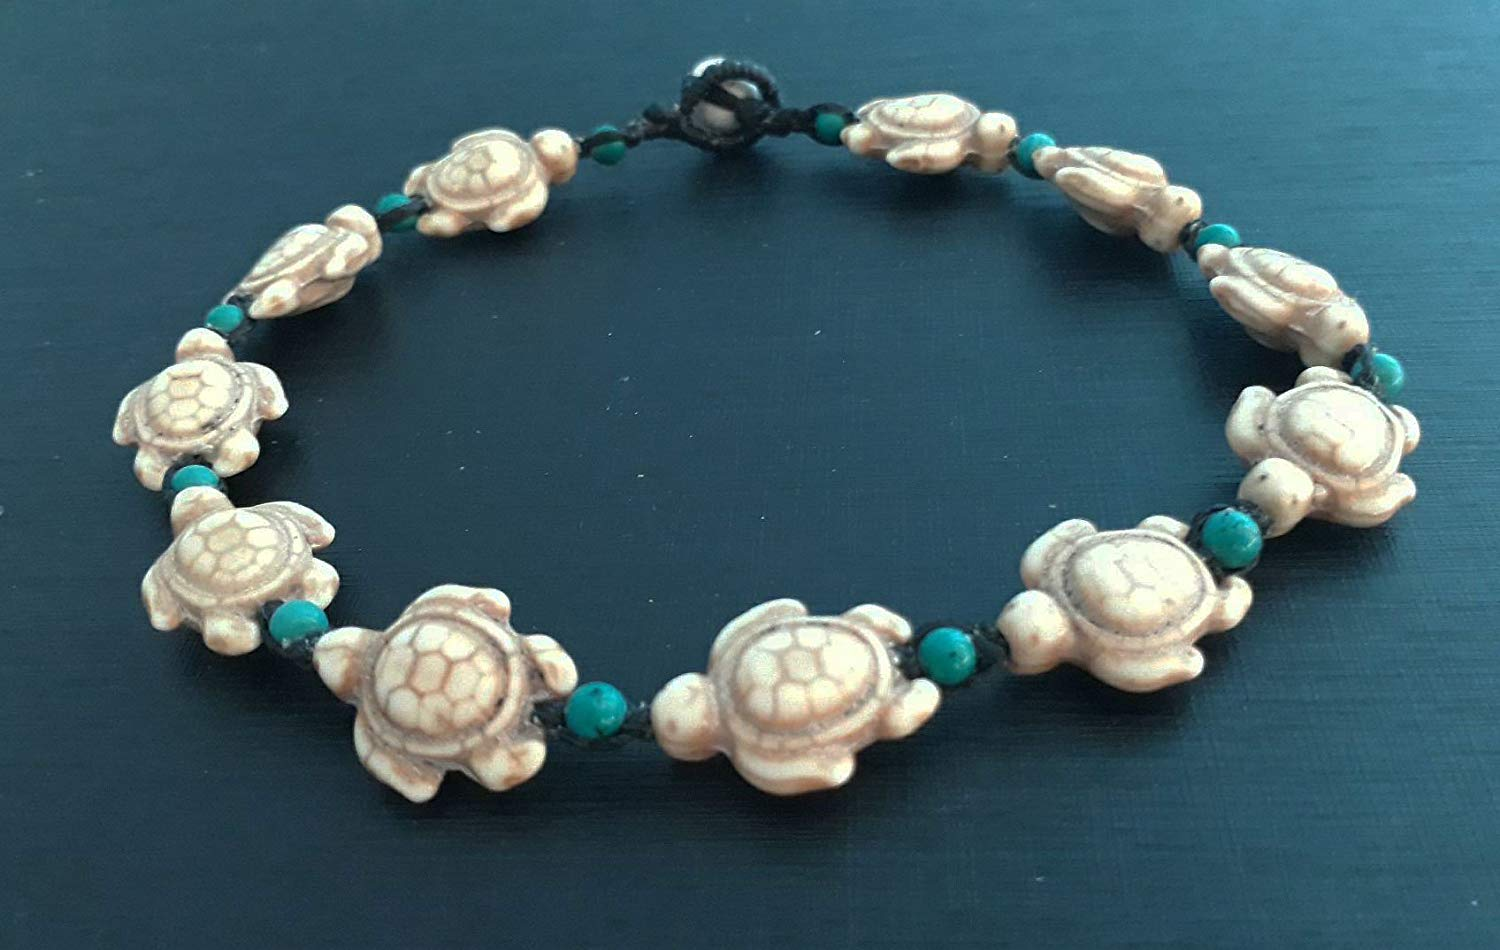 Howlite turtle anklets,stone anklets turquoise anklets men anklets women anklets